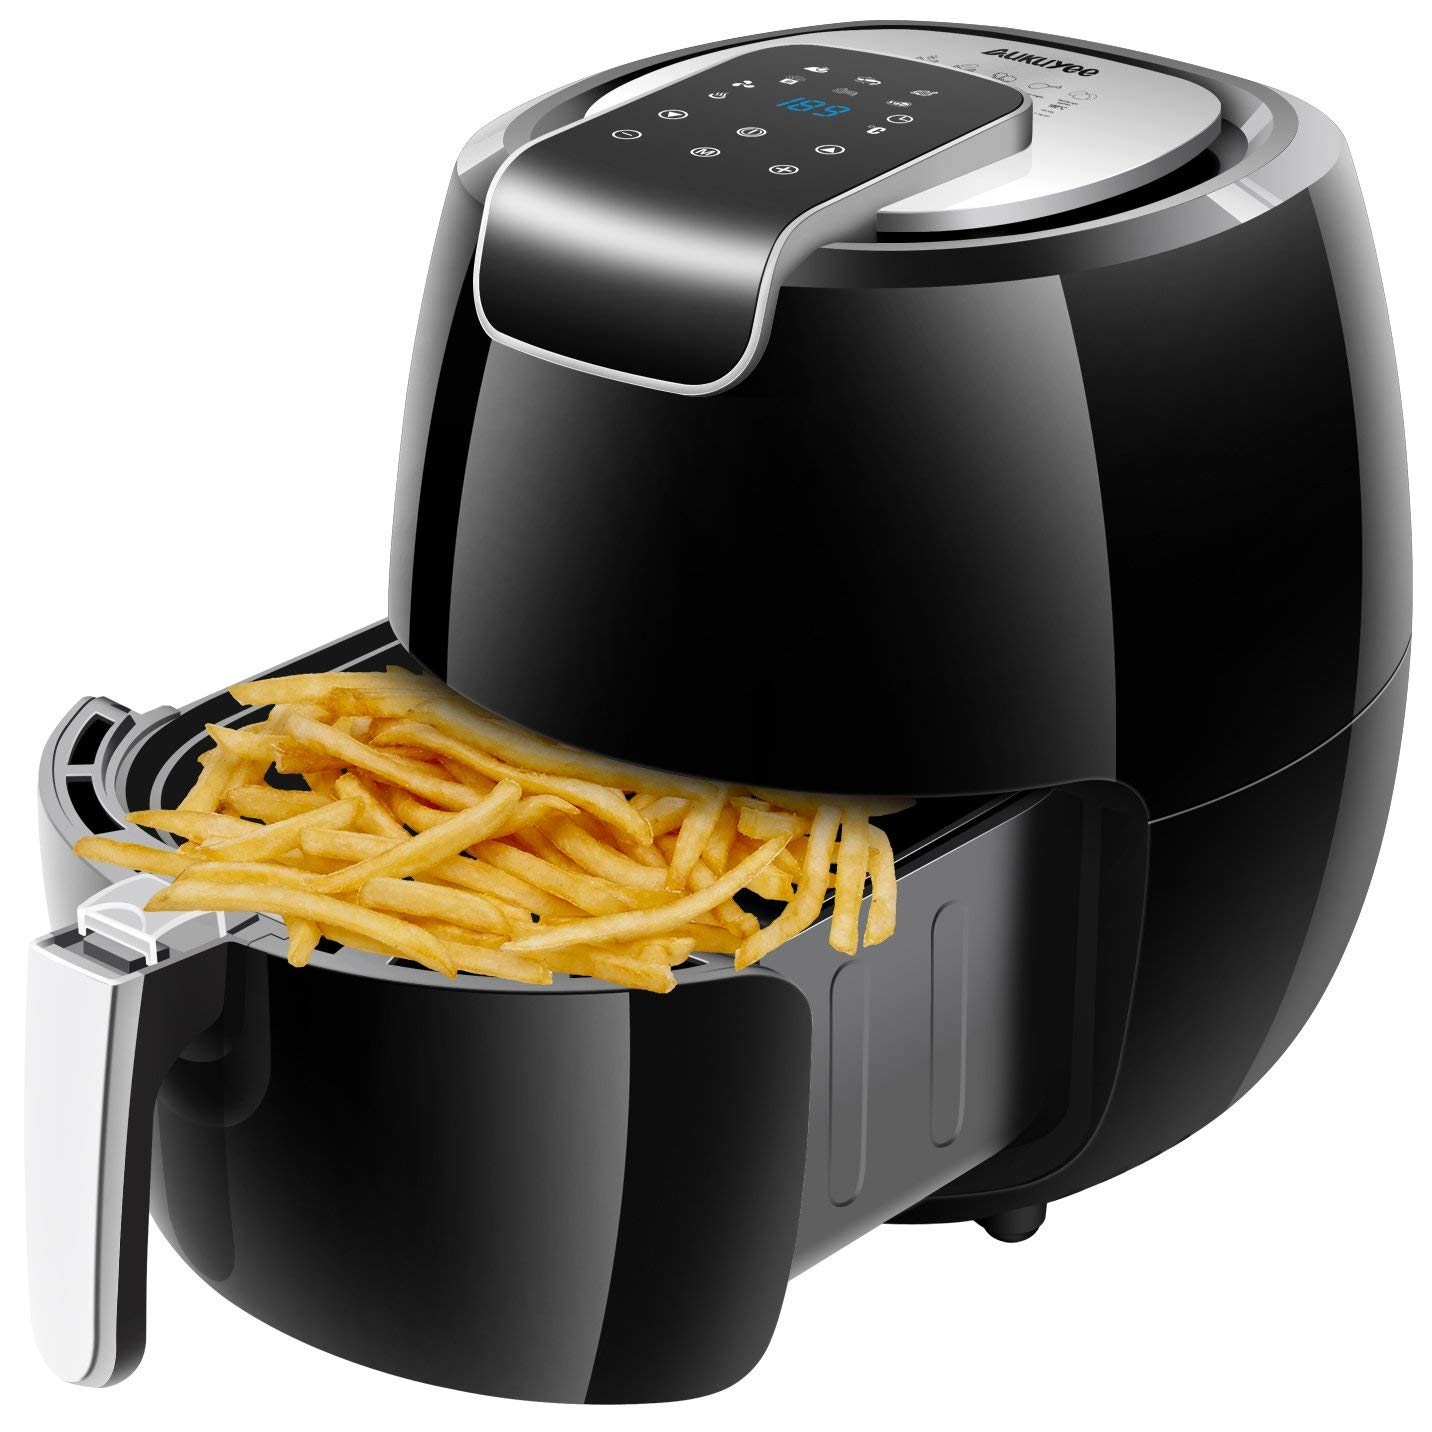 AUKUYEE Air Fryer, Oilless Cooker with Touch Screen Control, Dishwasher Safe, XL 5.6QT / 1800W for Fast, Healthy & Oil-Free Cooking, Recipes (Black)